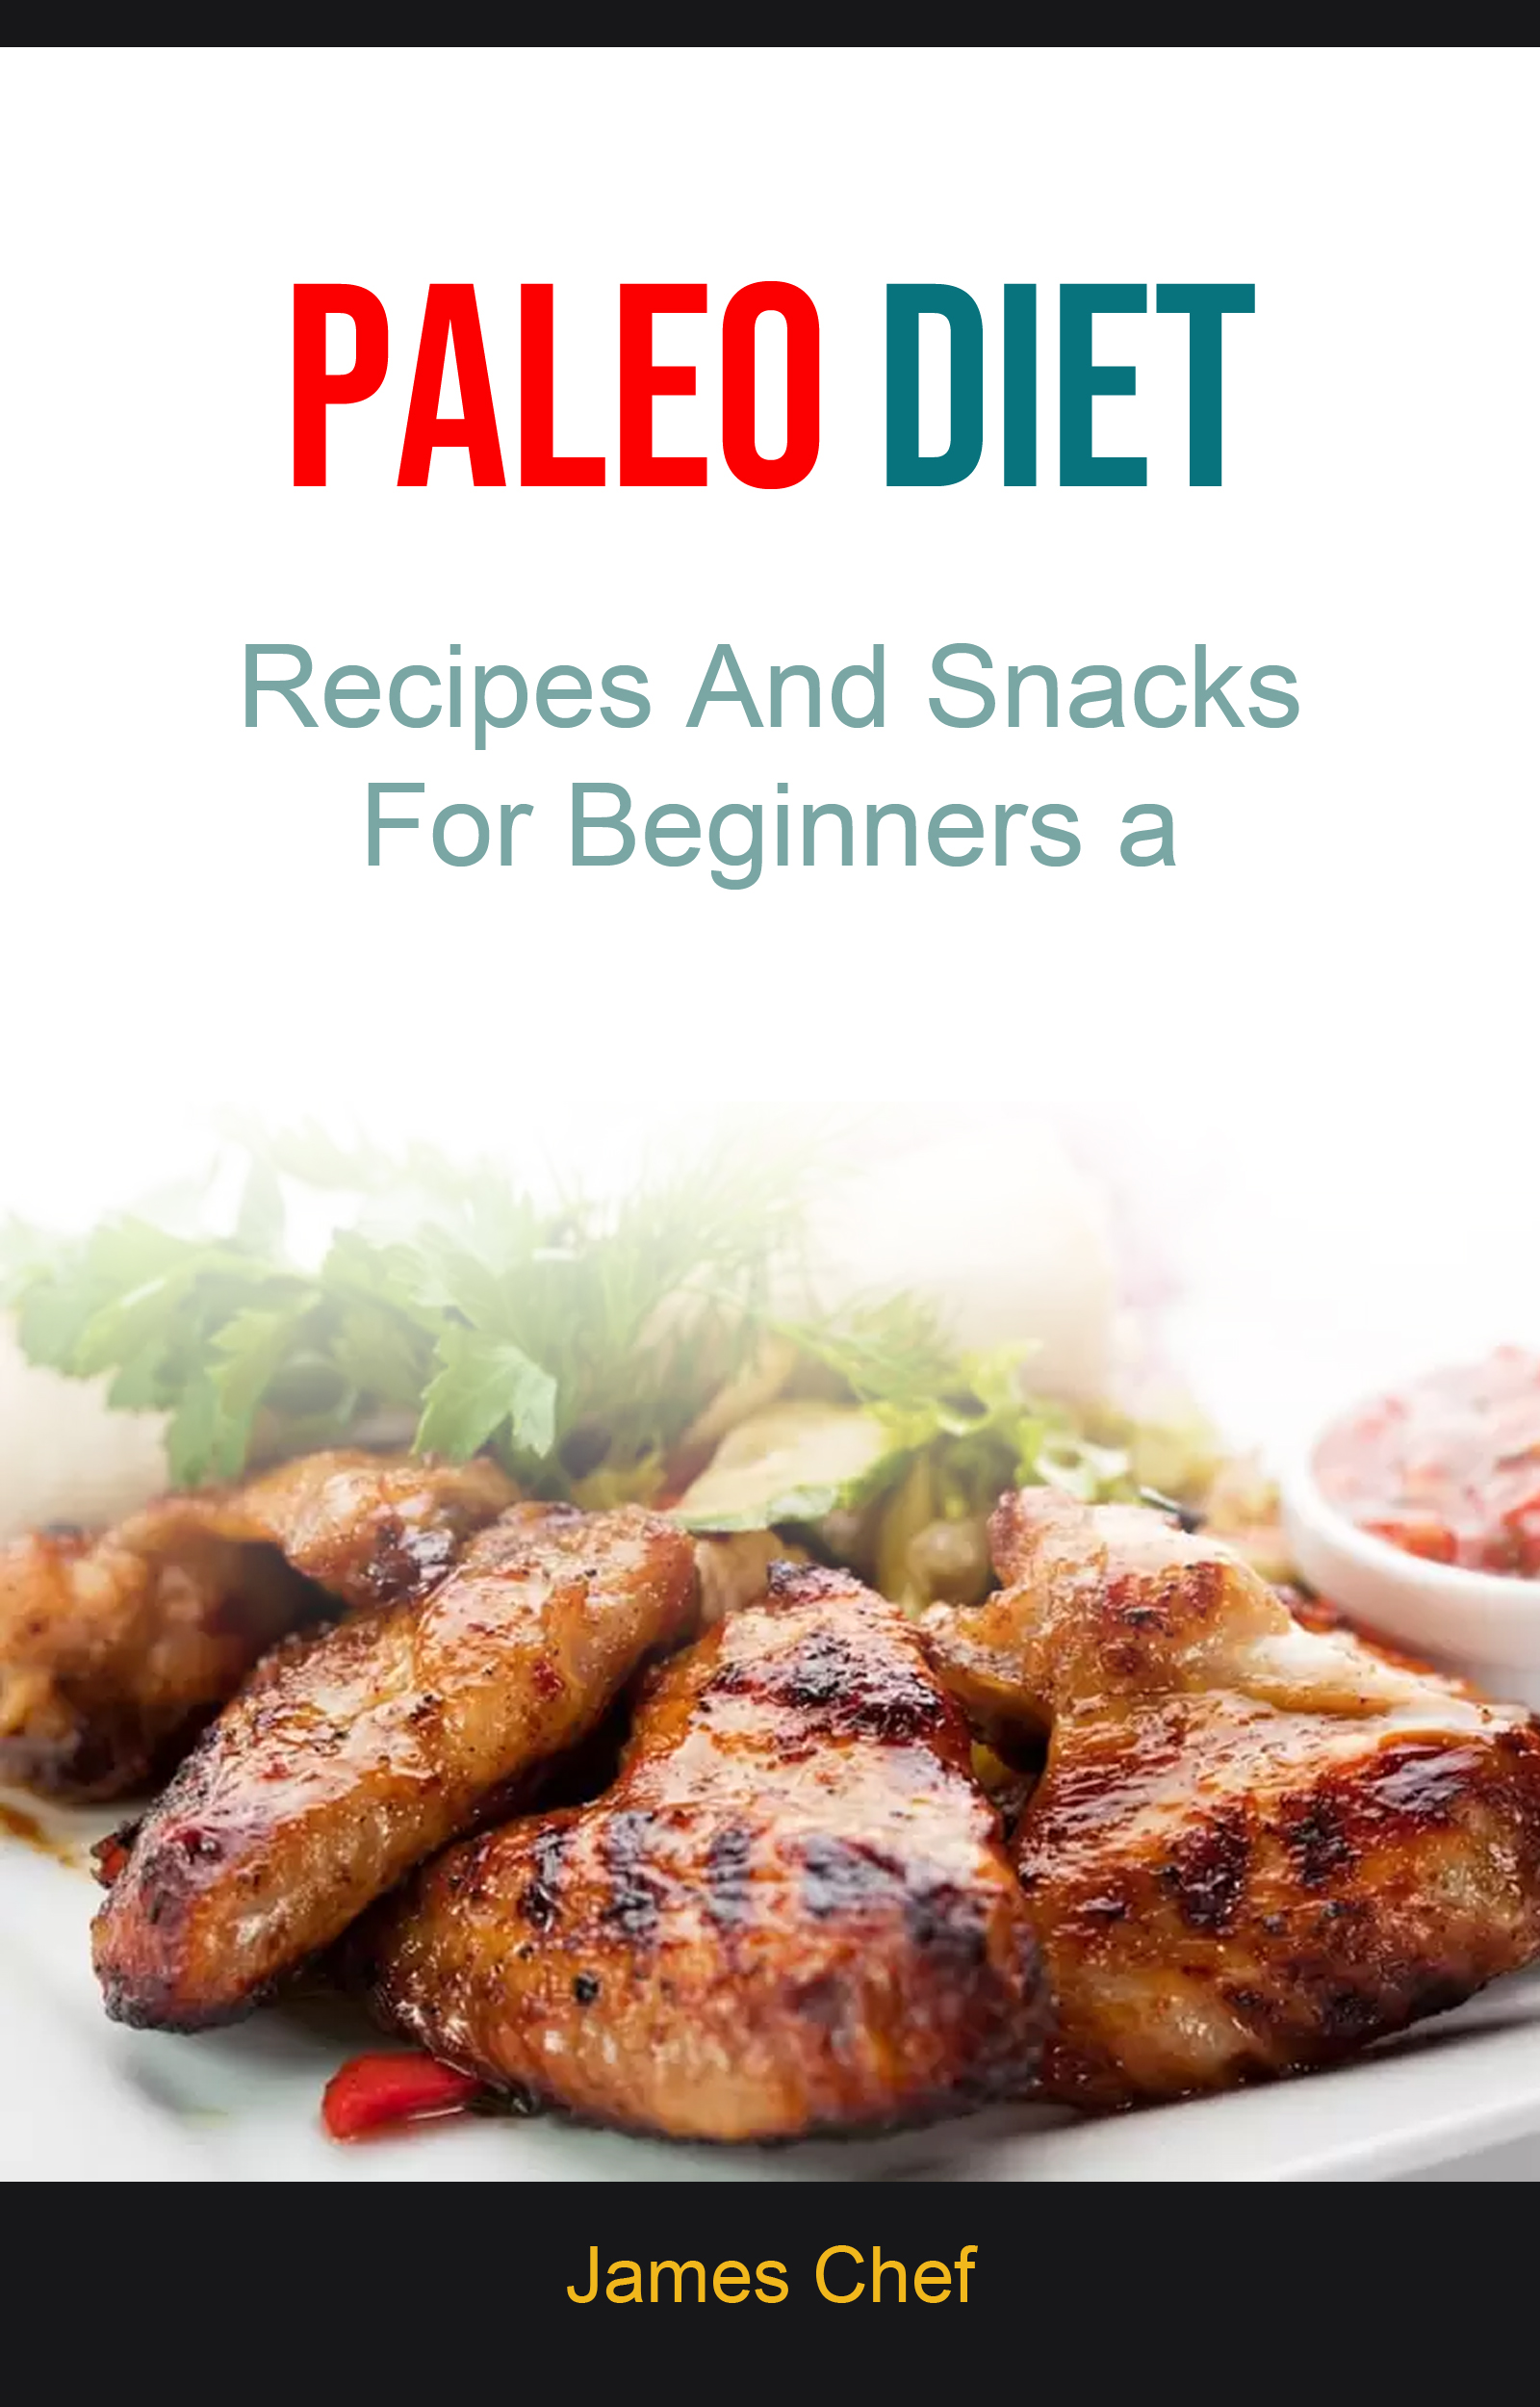 Paleo diet: recipes and snacks for beginners